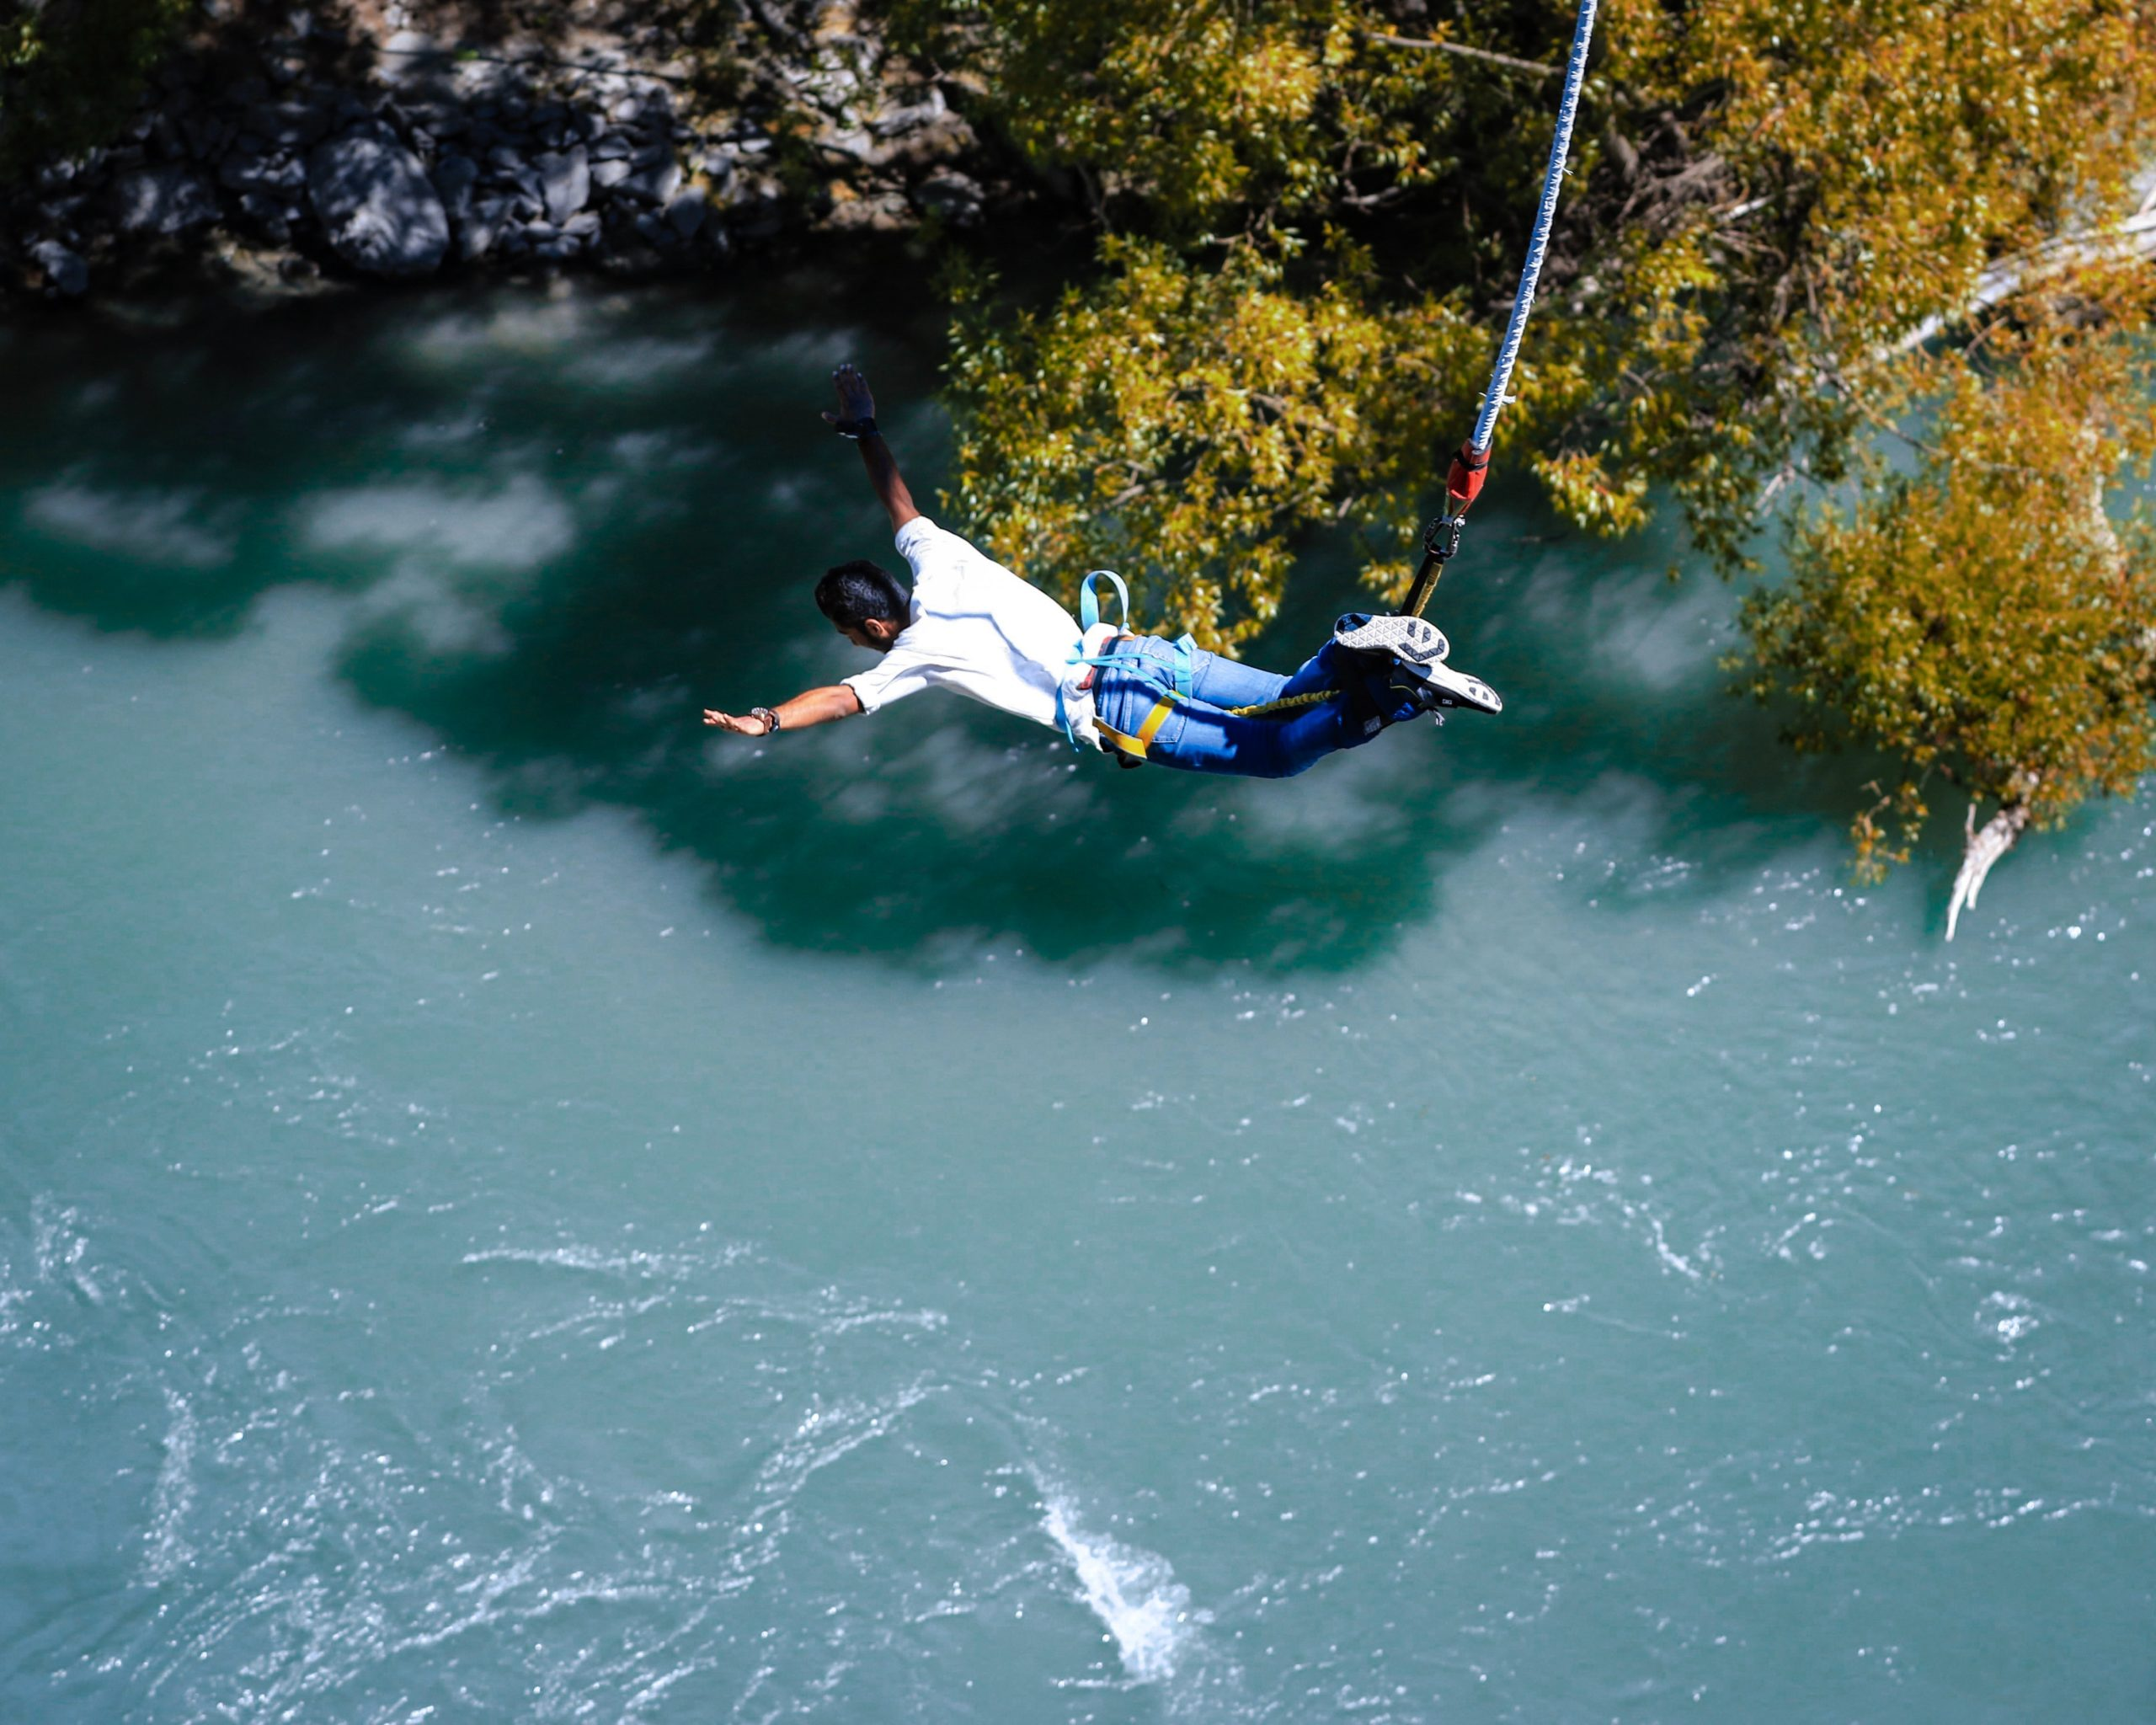 The Bungee Dunker